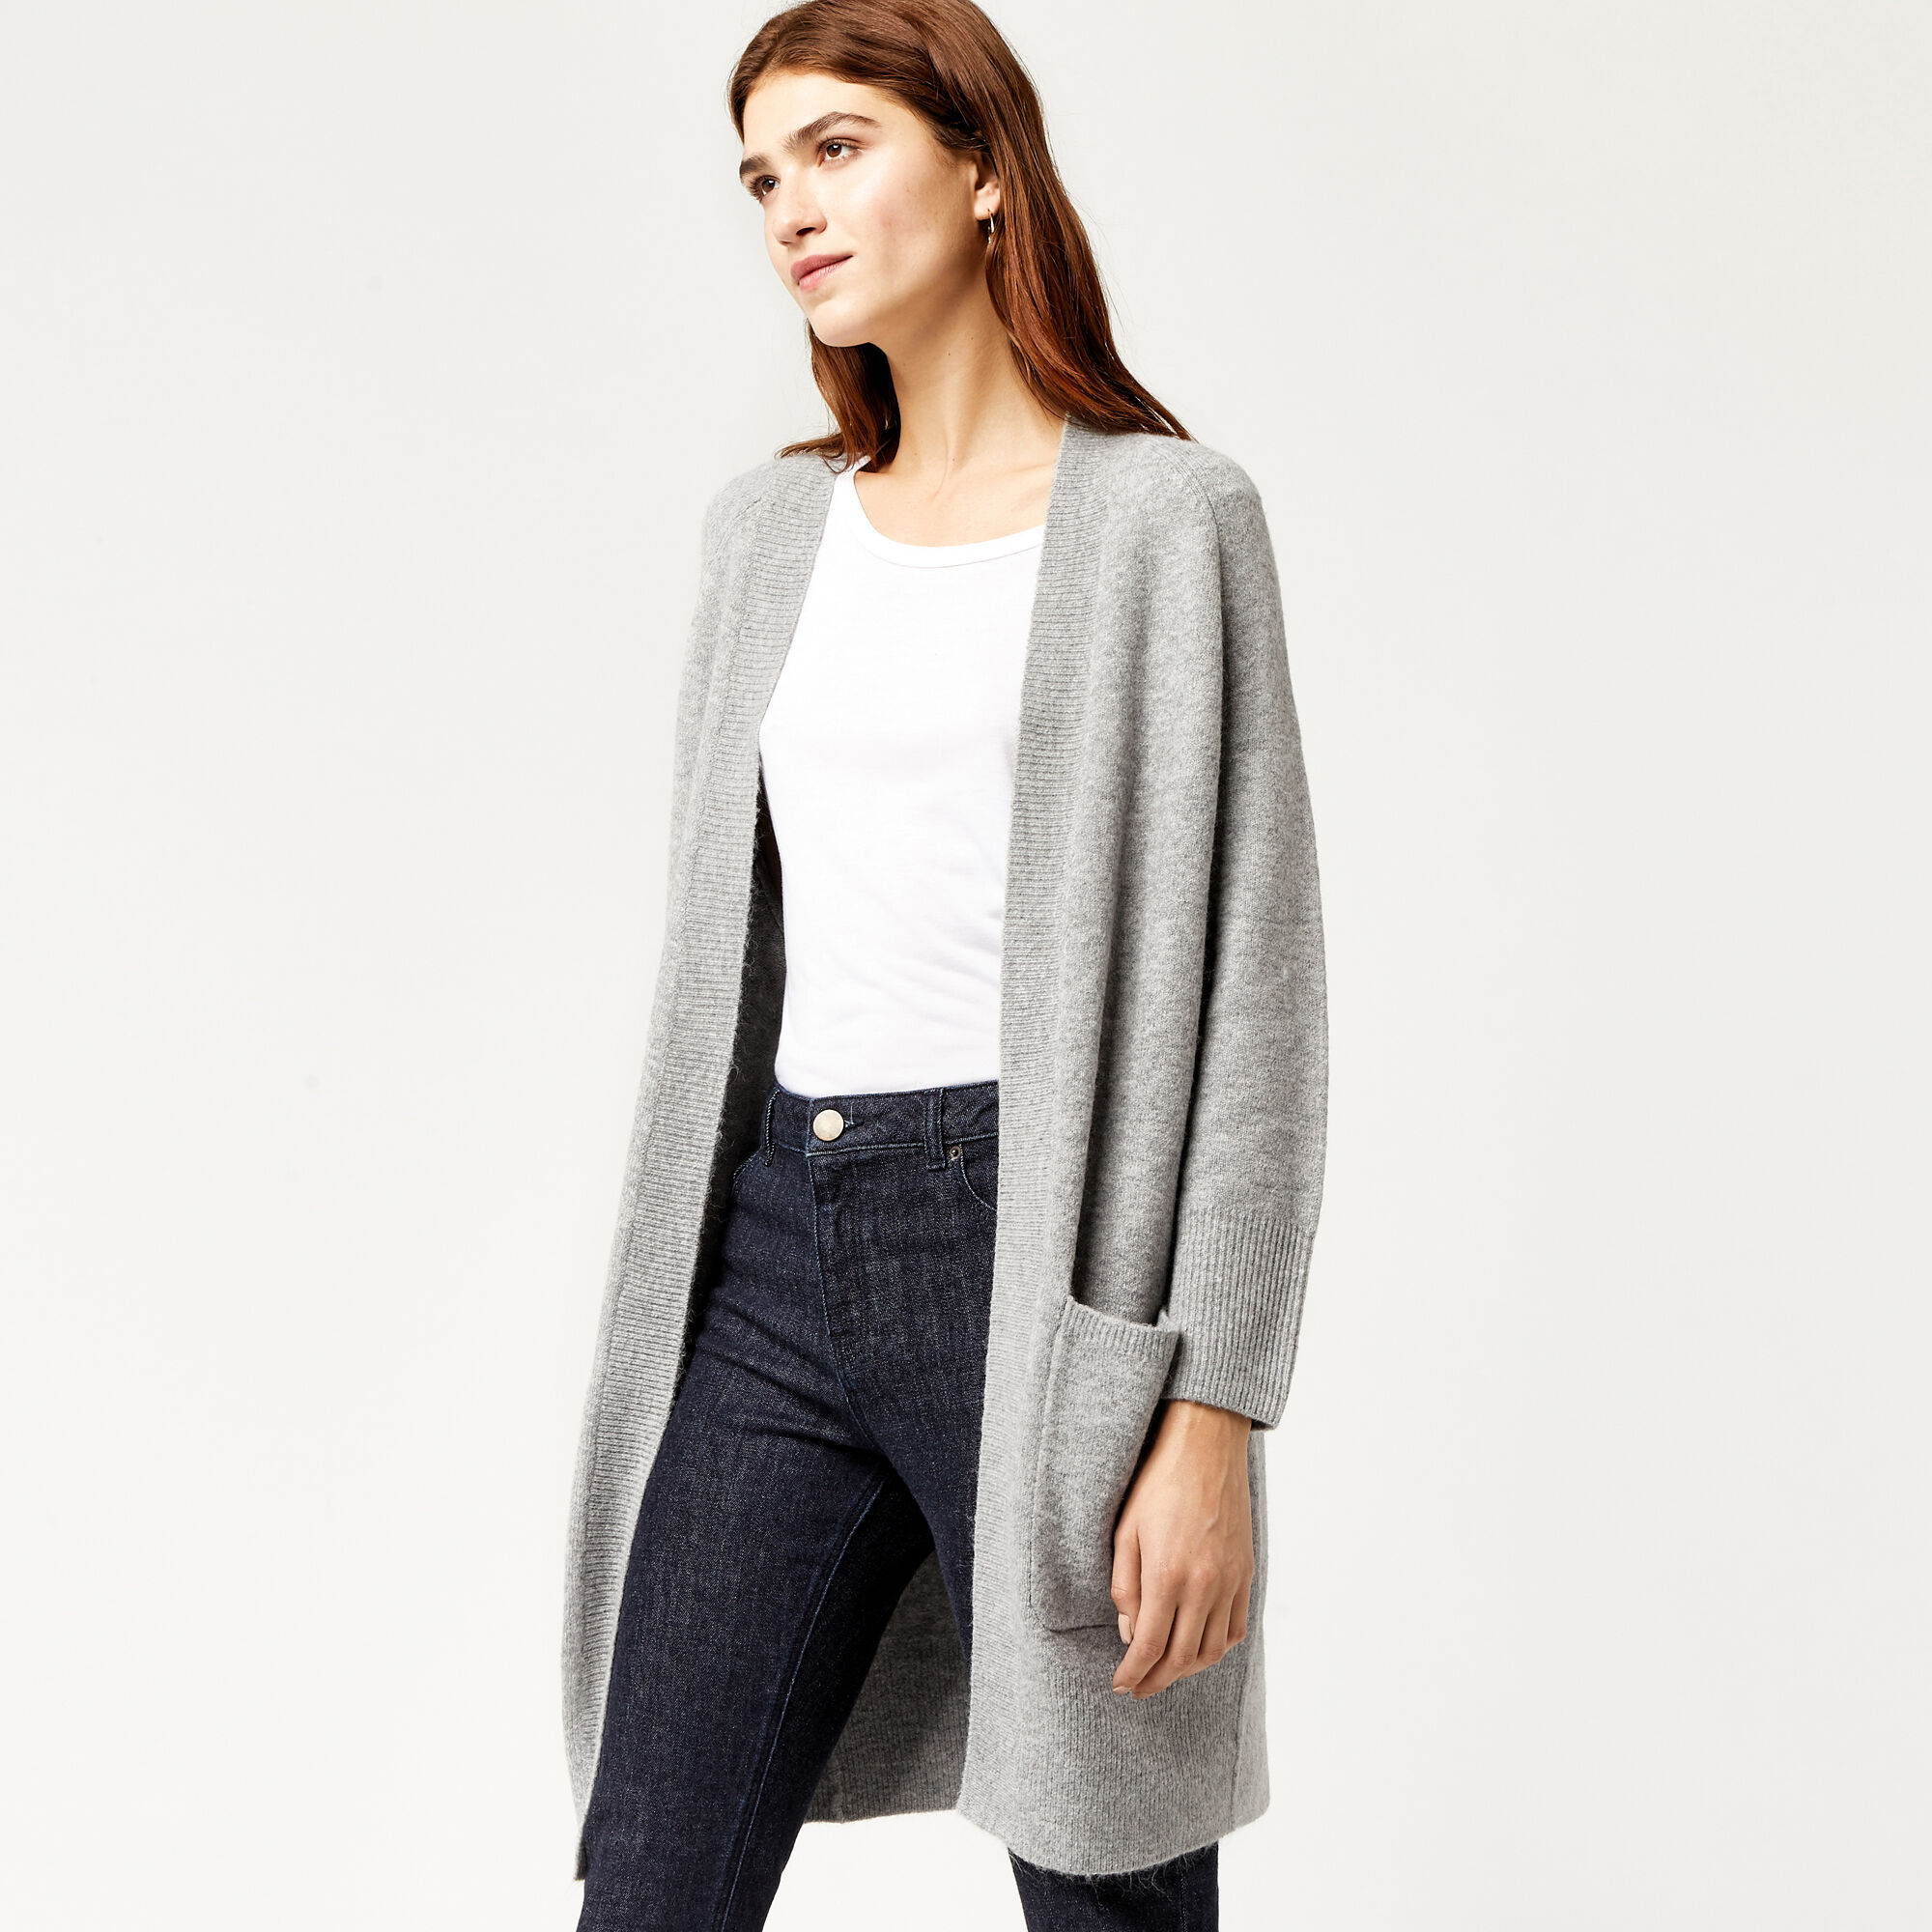 Warehouse, SOFT LONG LINE CARDI Dark Grey 1